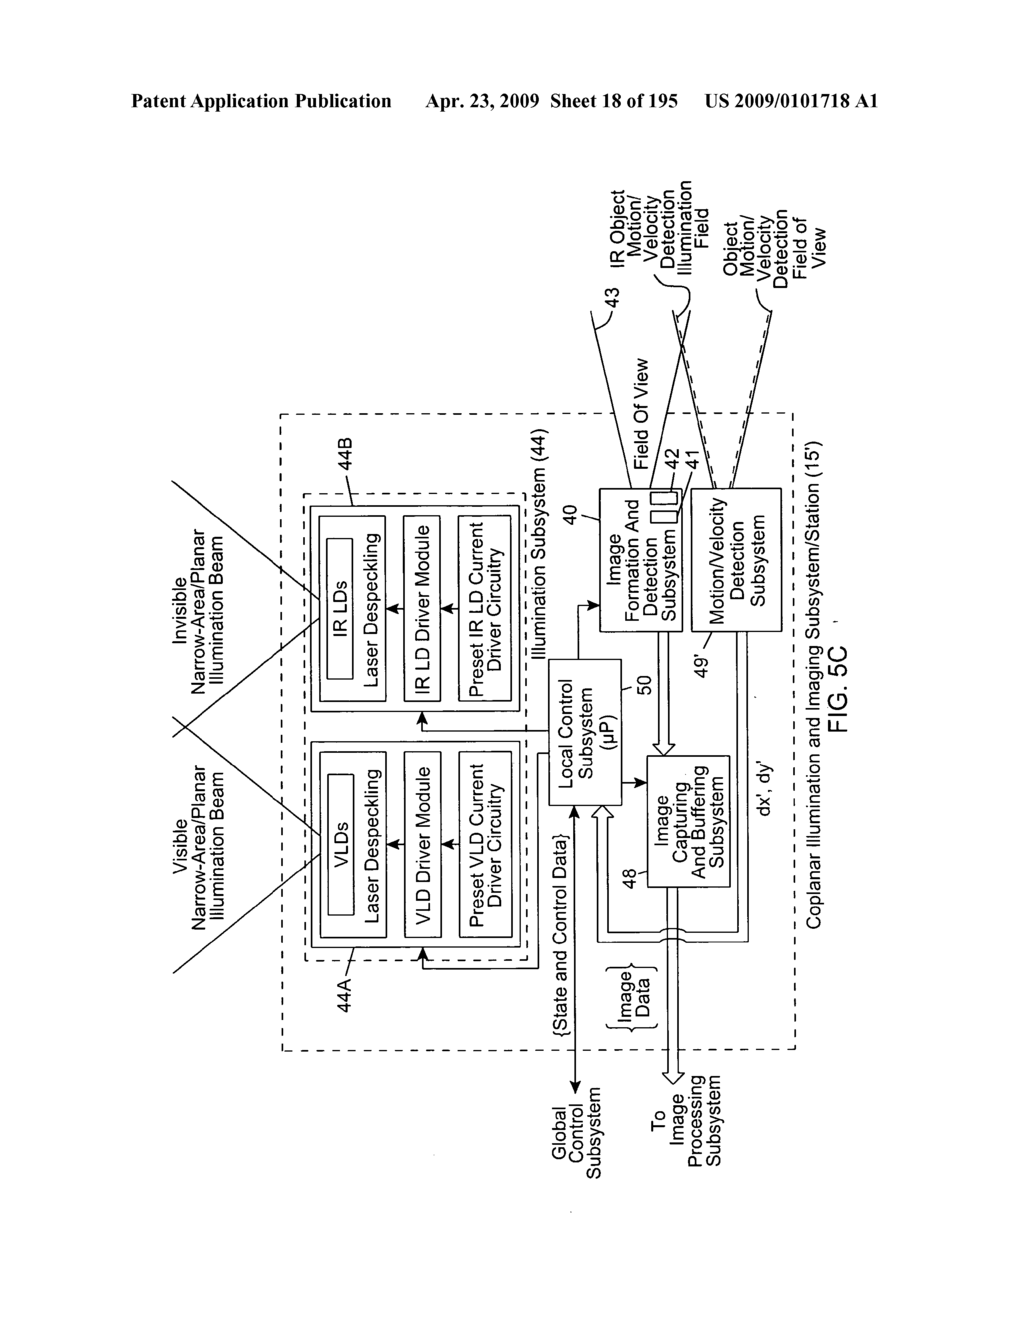 hight resolution of digital image capturing and processing system employing automatic object detection and spectral mixing based illumination techniques diagram schematic